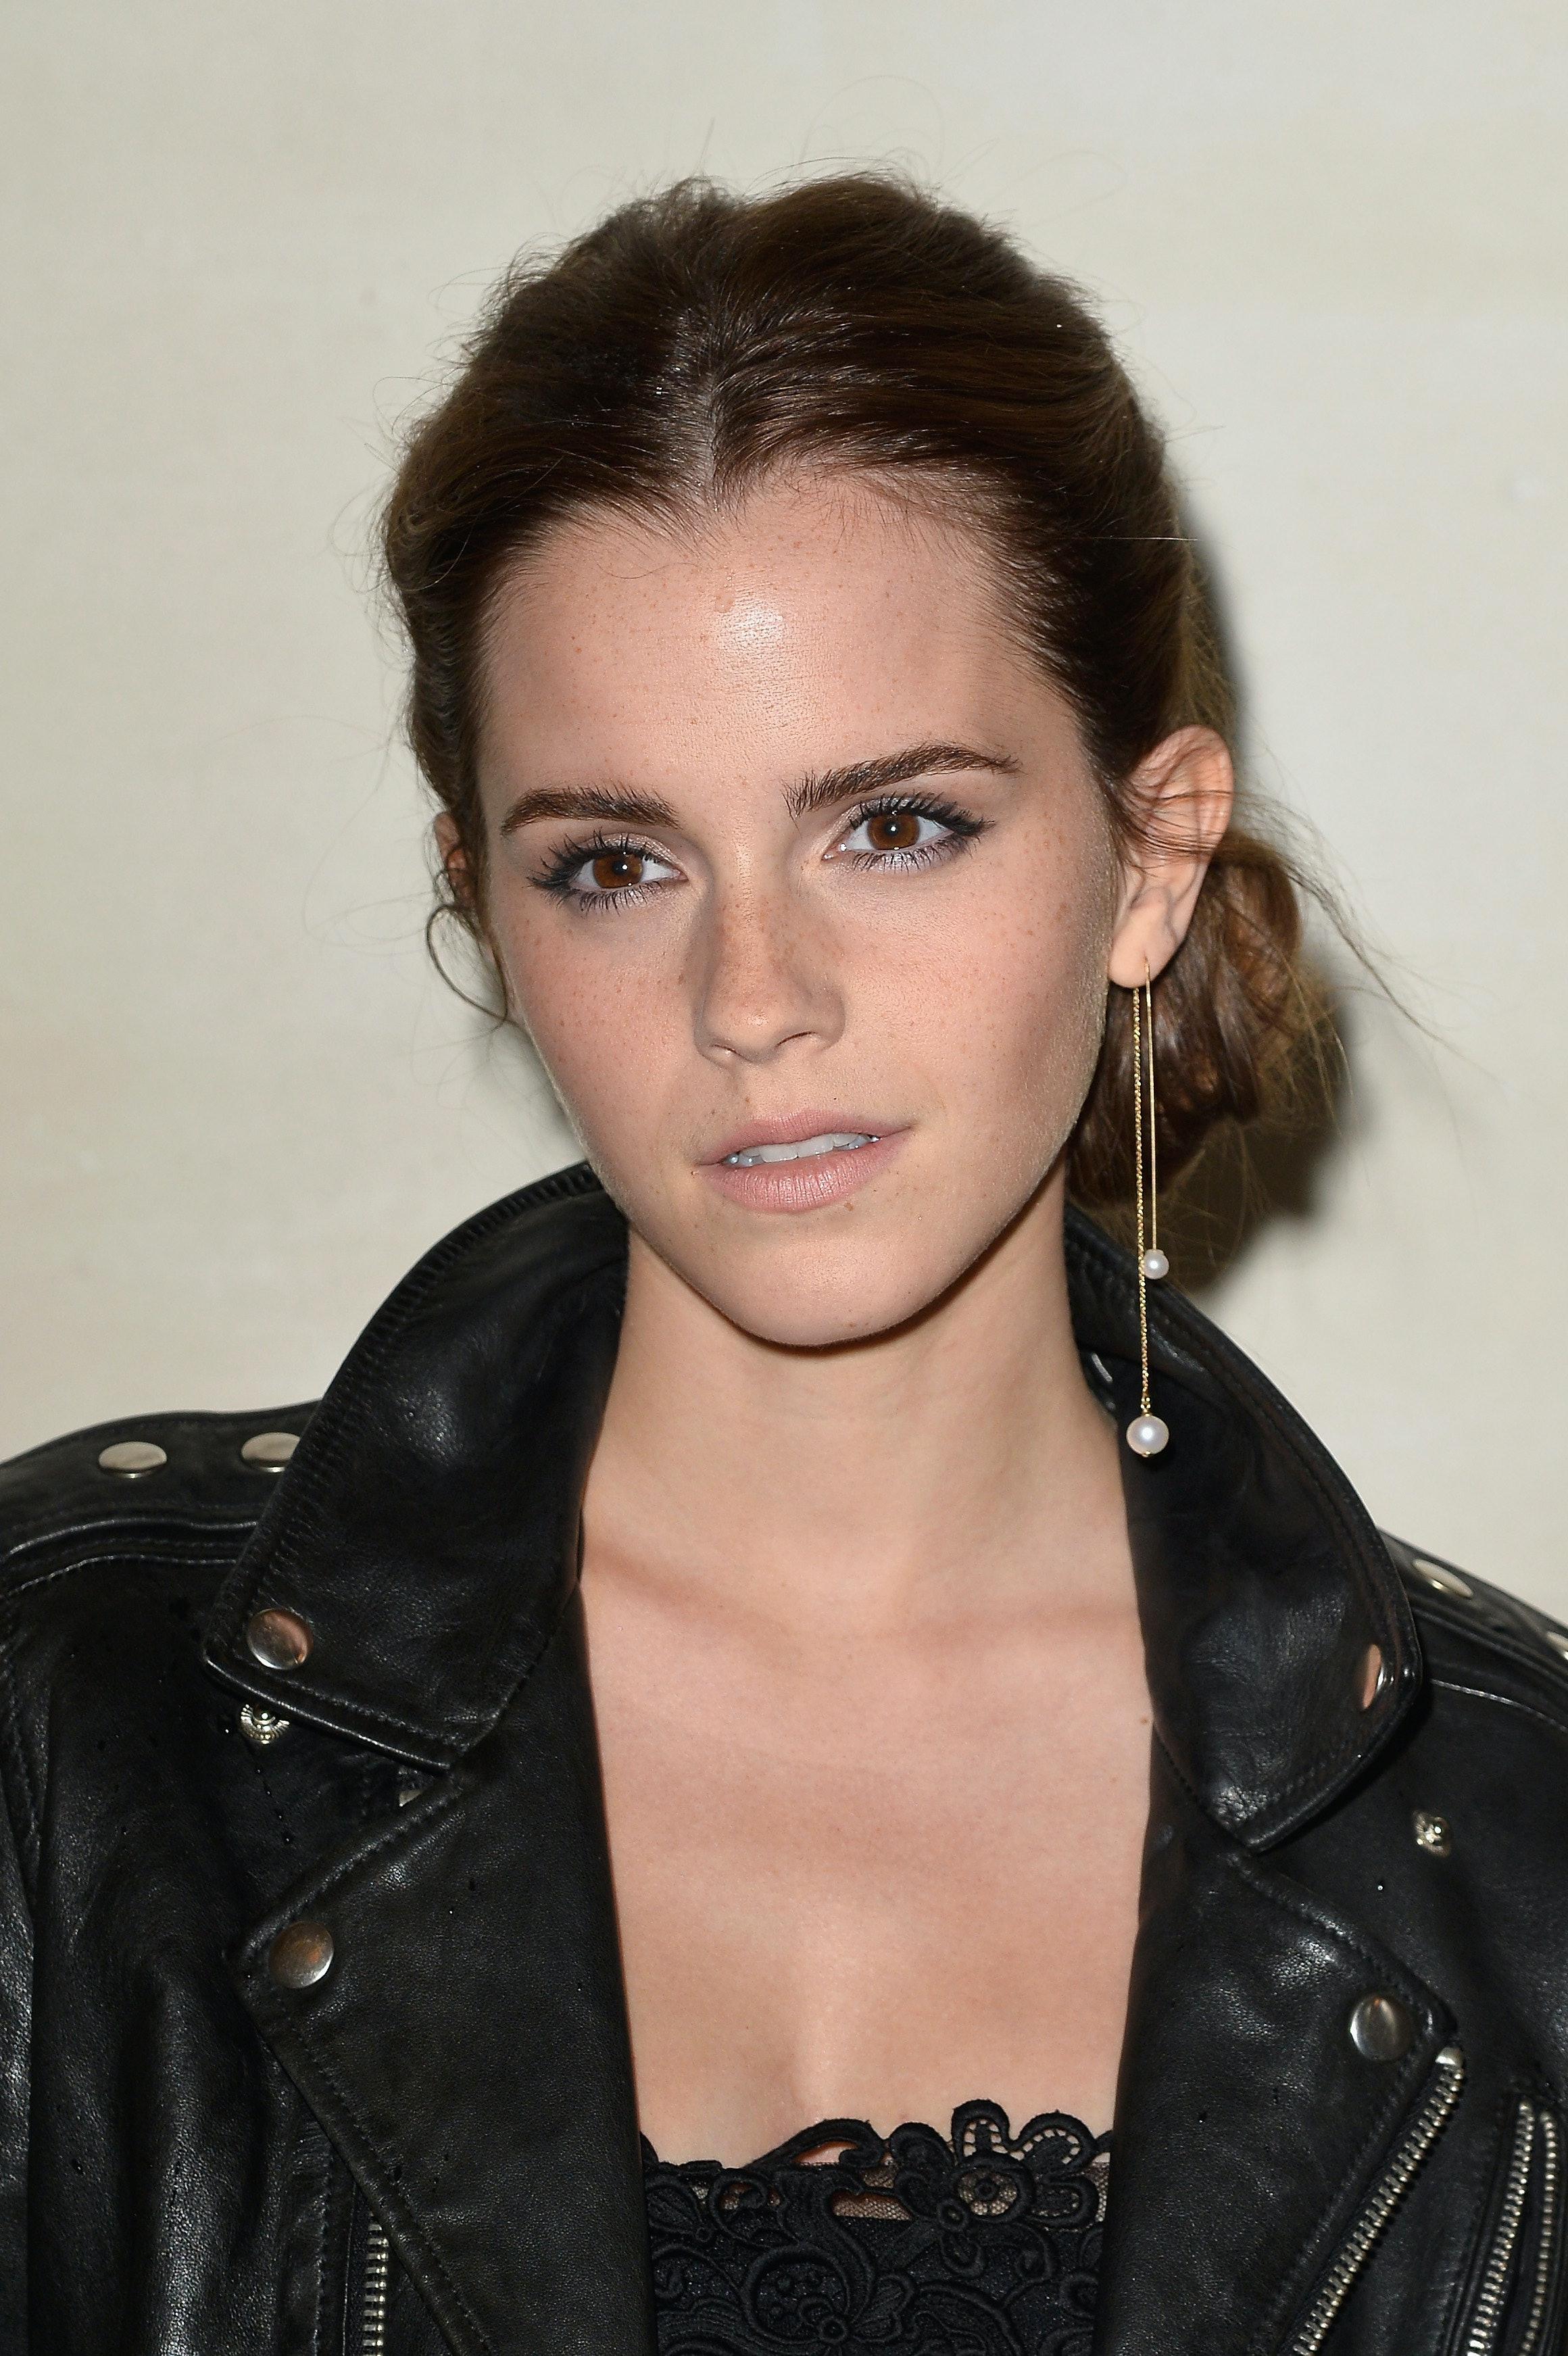 Are there any emma watson nude pics